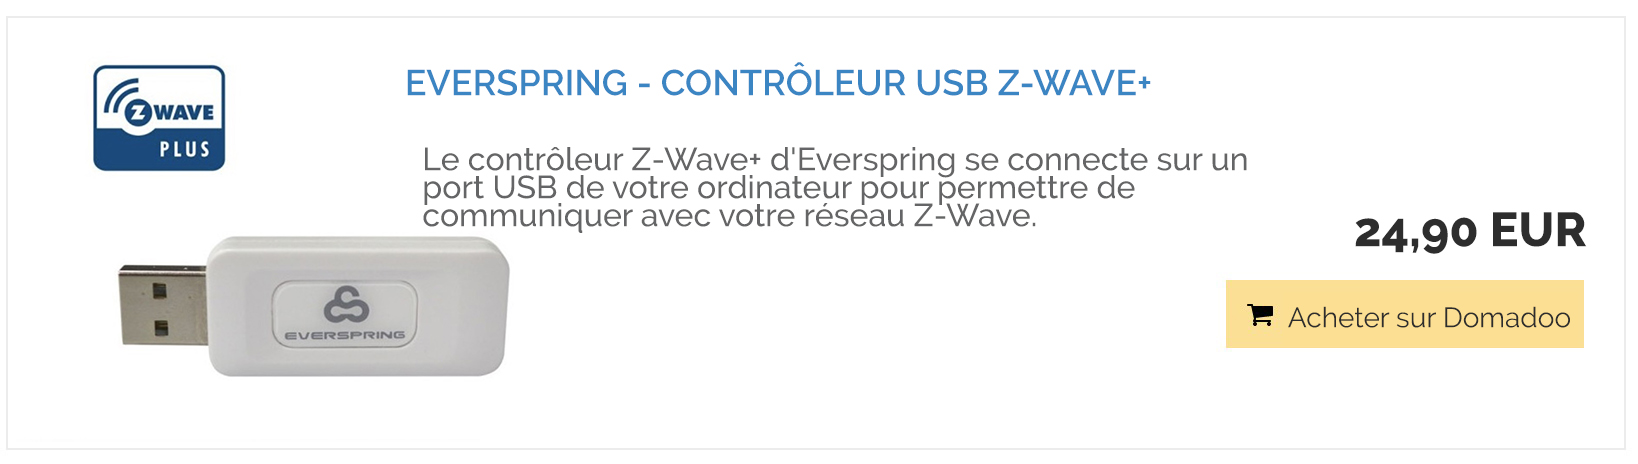 everspring-domotique-sa413-zwave